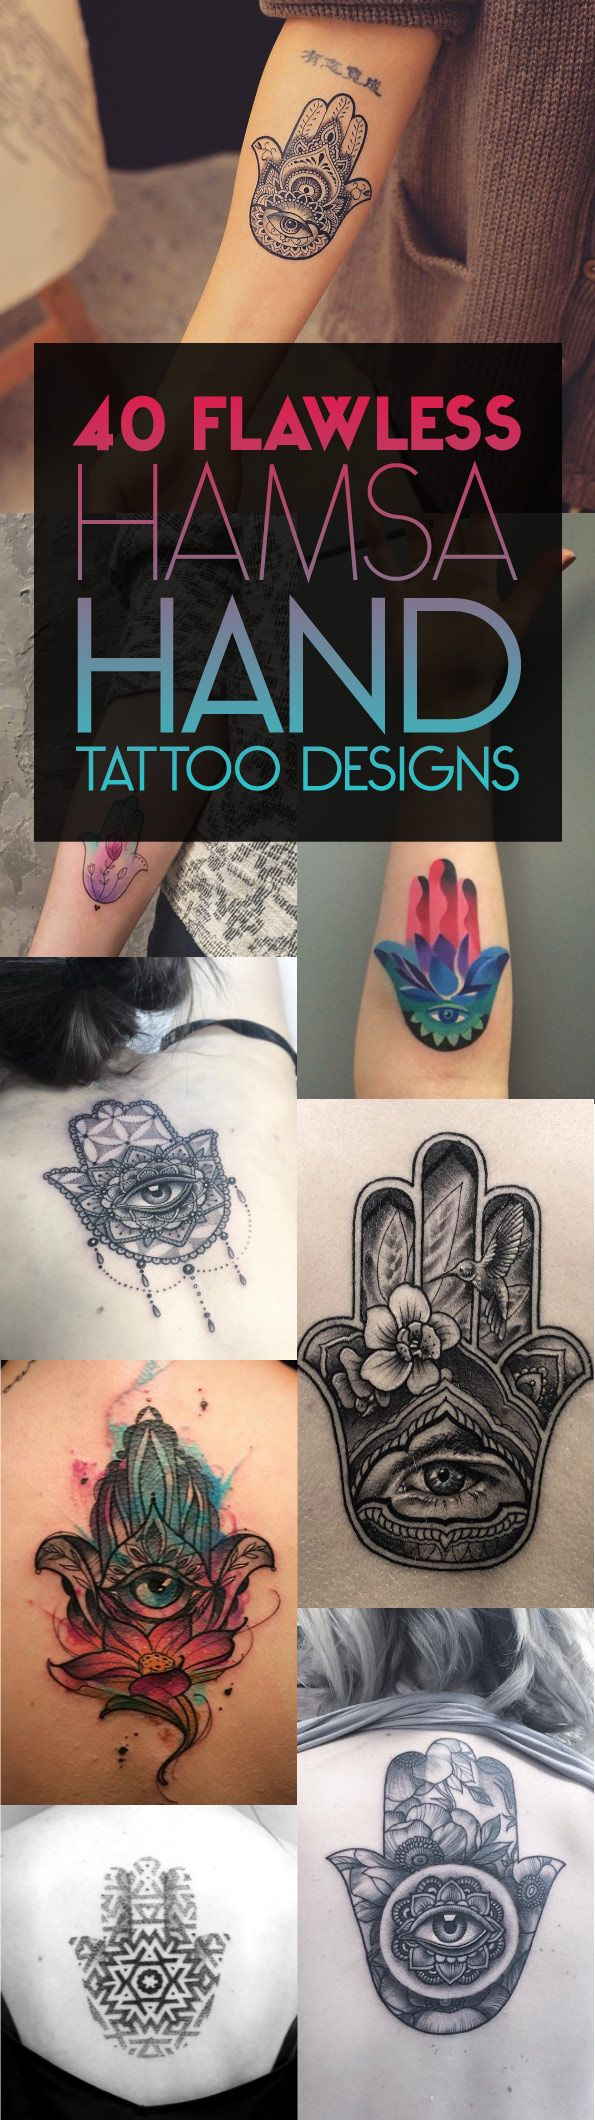 40 Flawless Hamsa Hand Tattoo Designs | TattooBlend